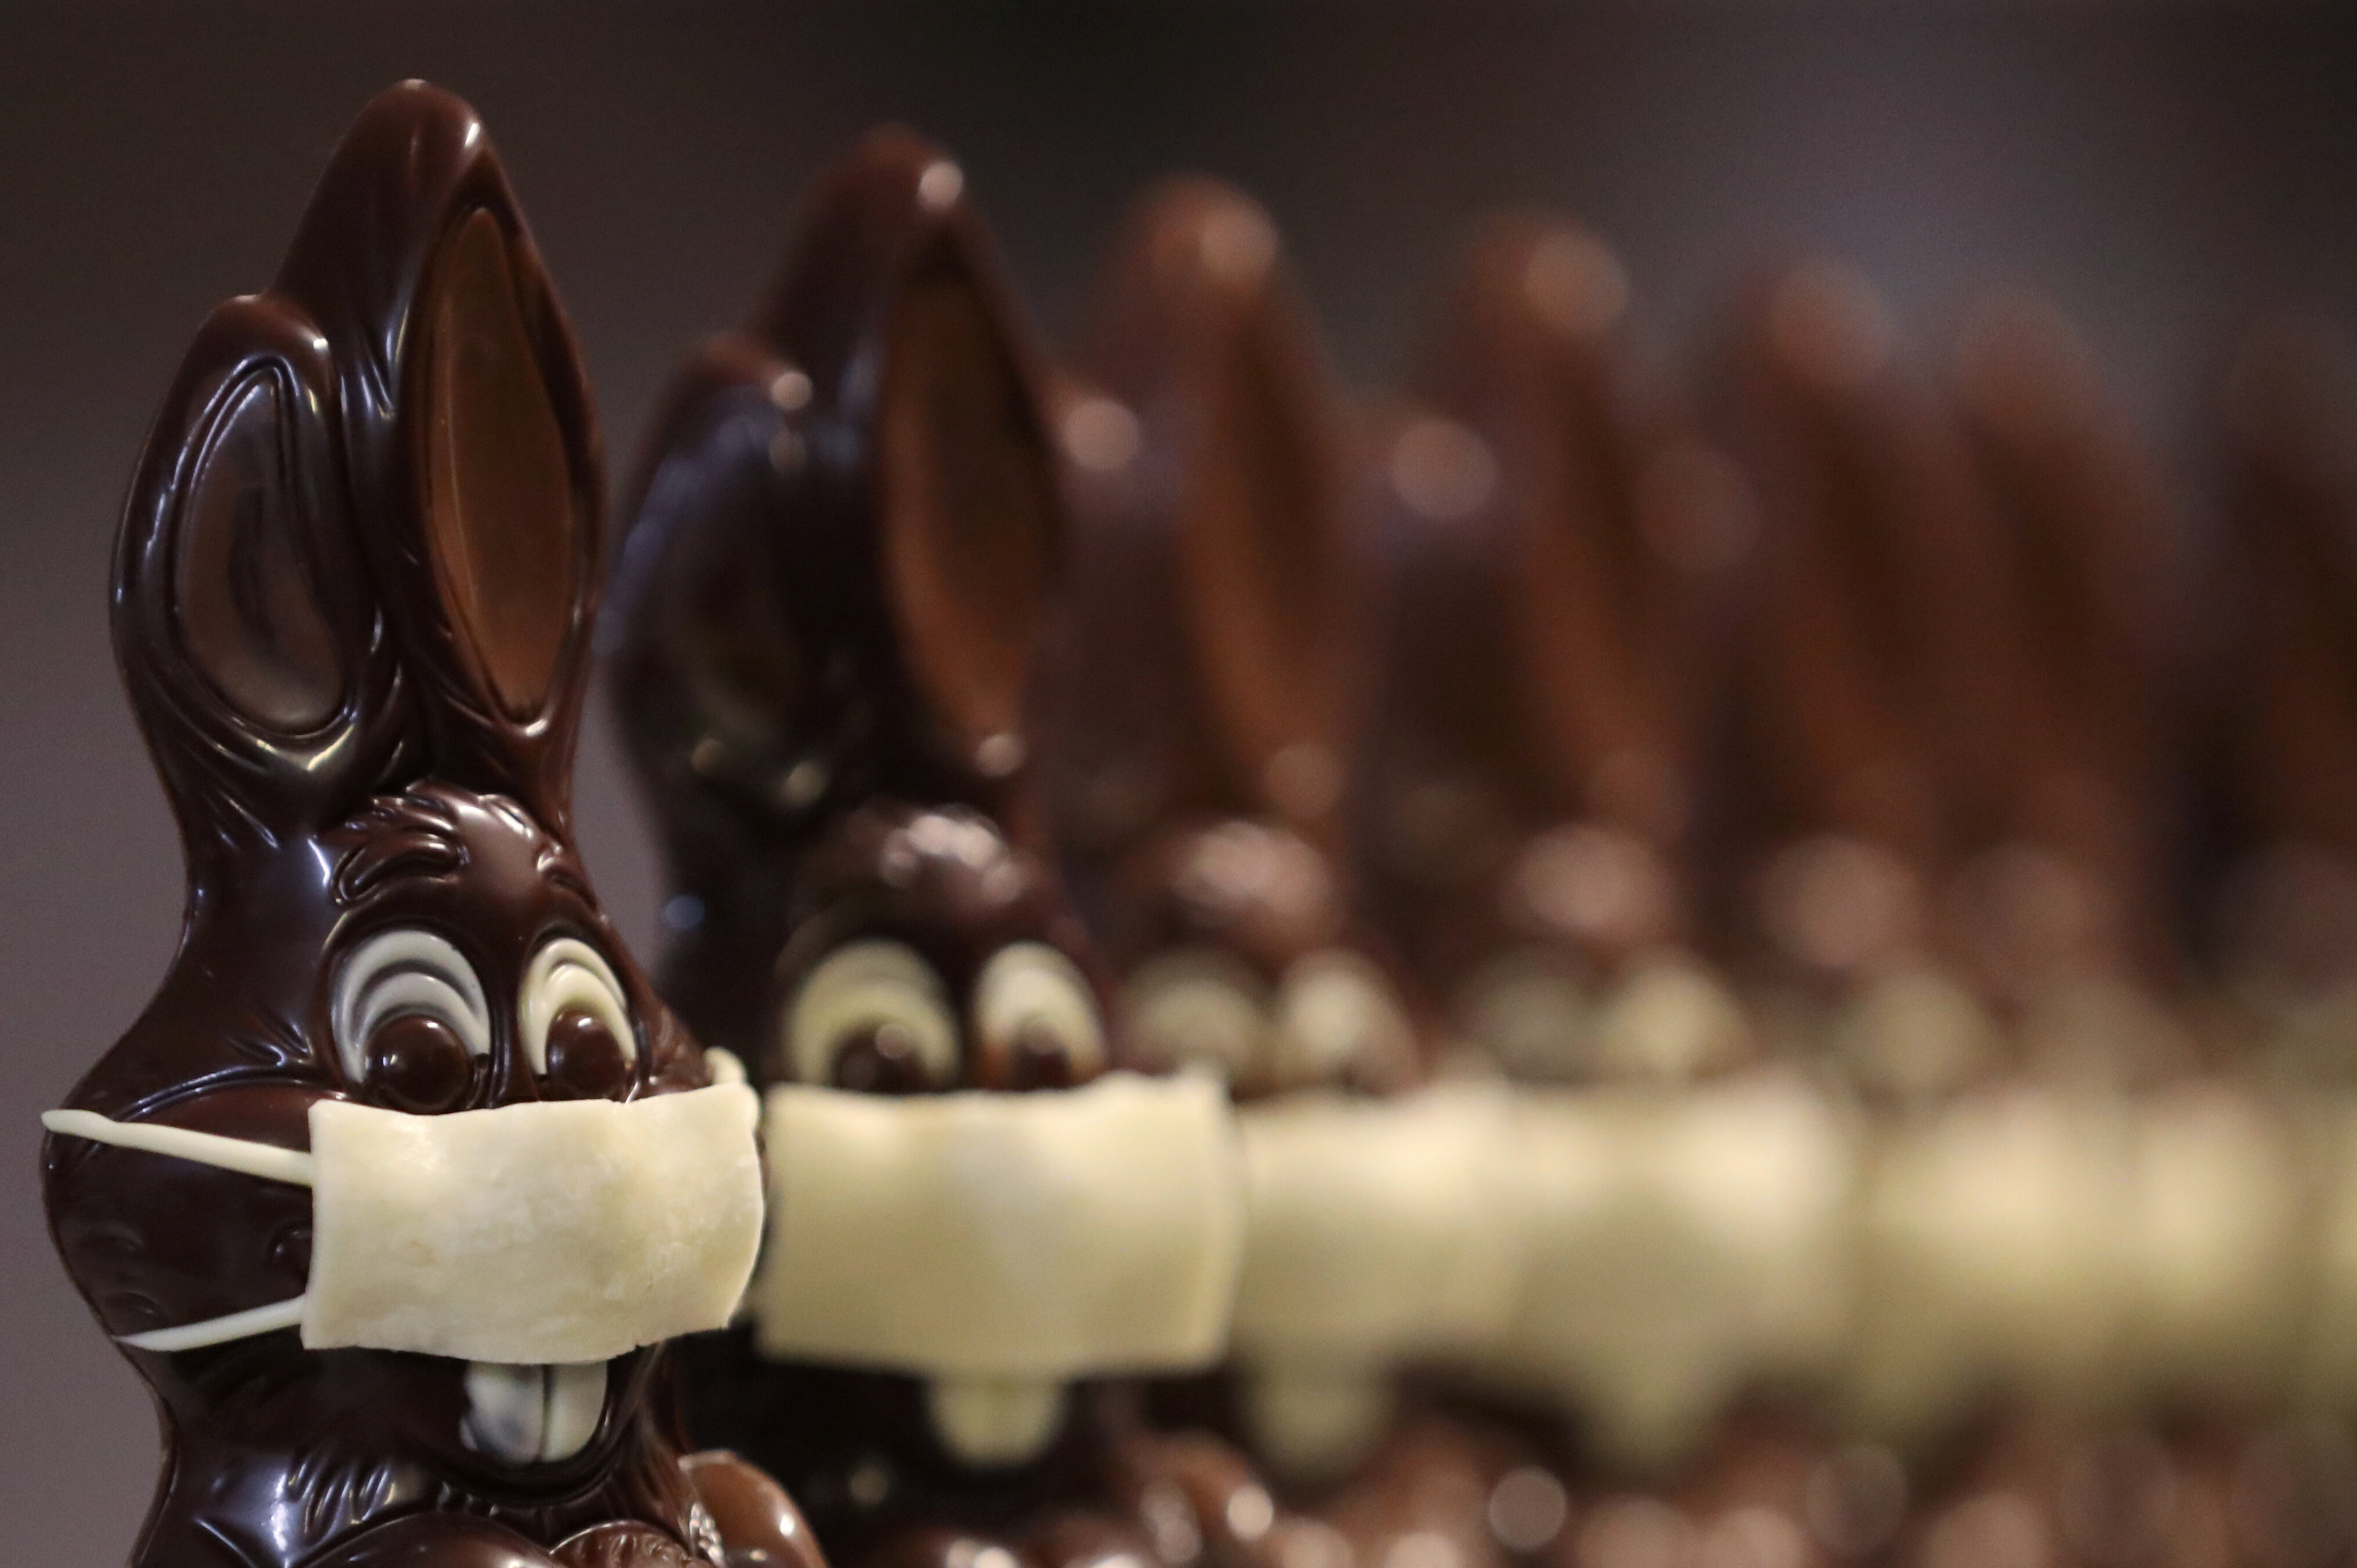 Not just people, chocolate Easter bunnies need to wear masks in Belgium too